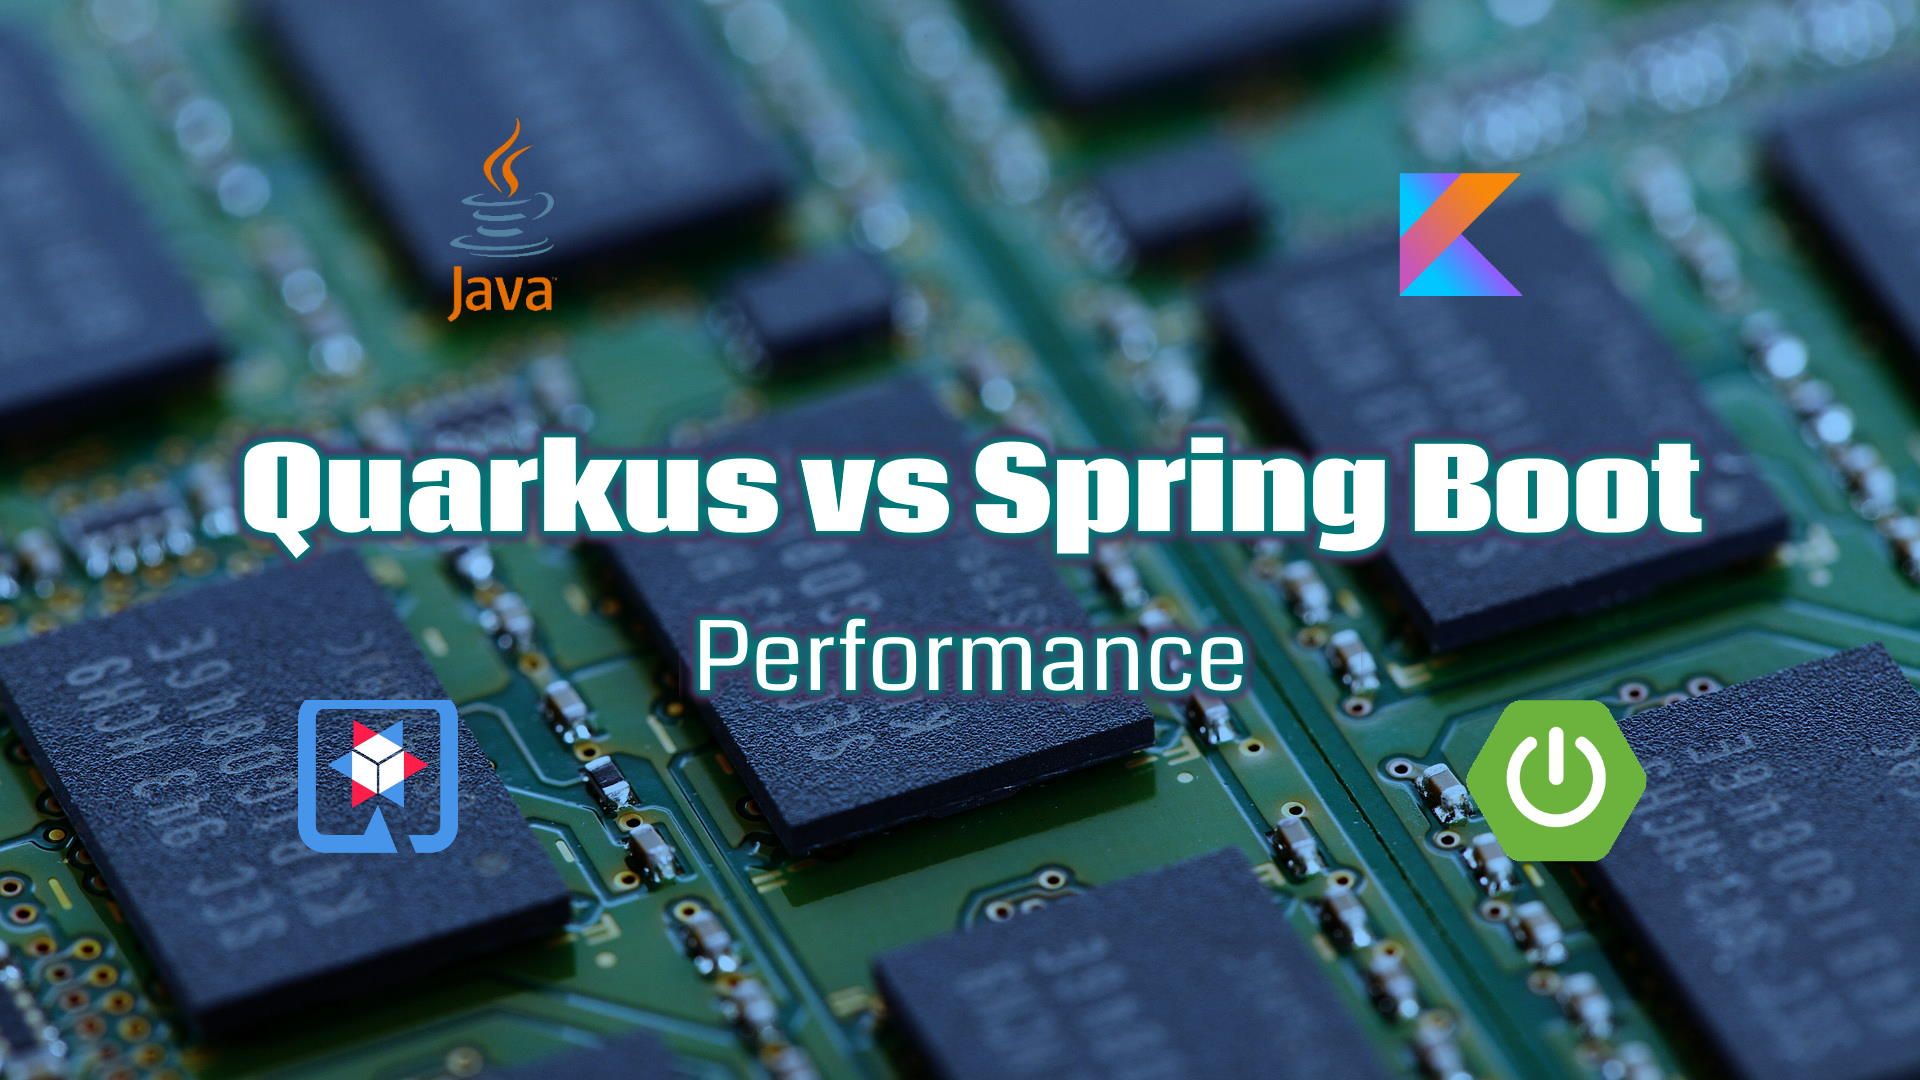 Quarkus vs Spring Boot - A real world JVM Performance comparison for Kotlin and Java on JDK 14